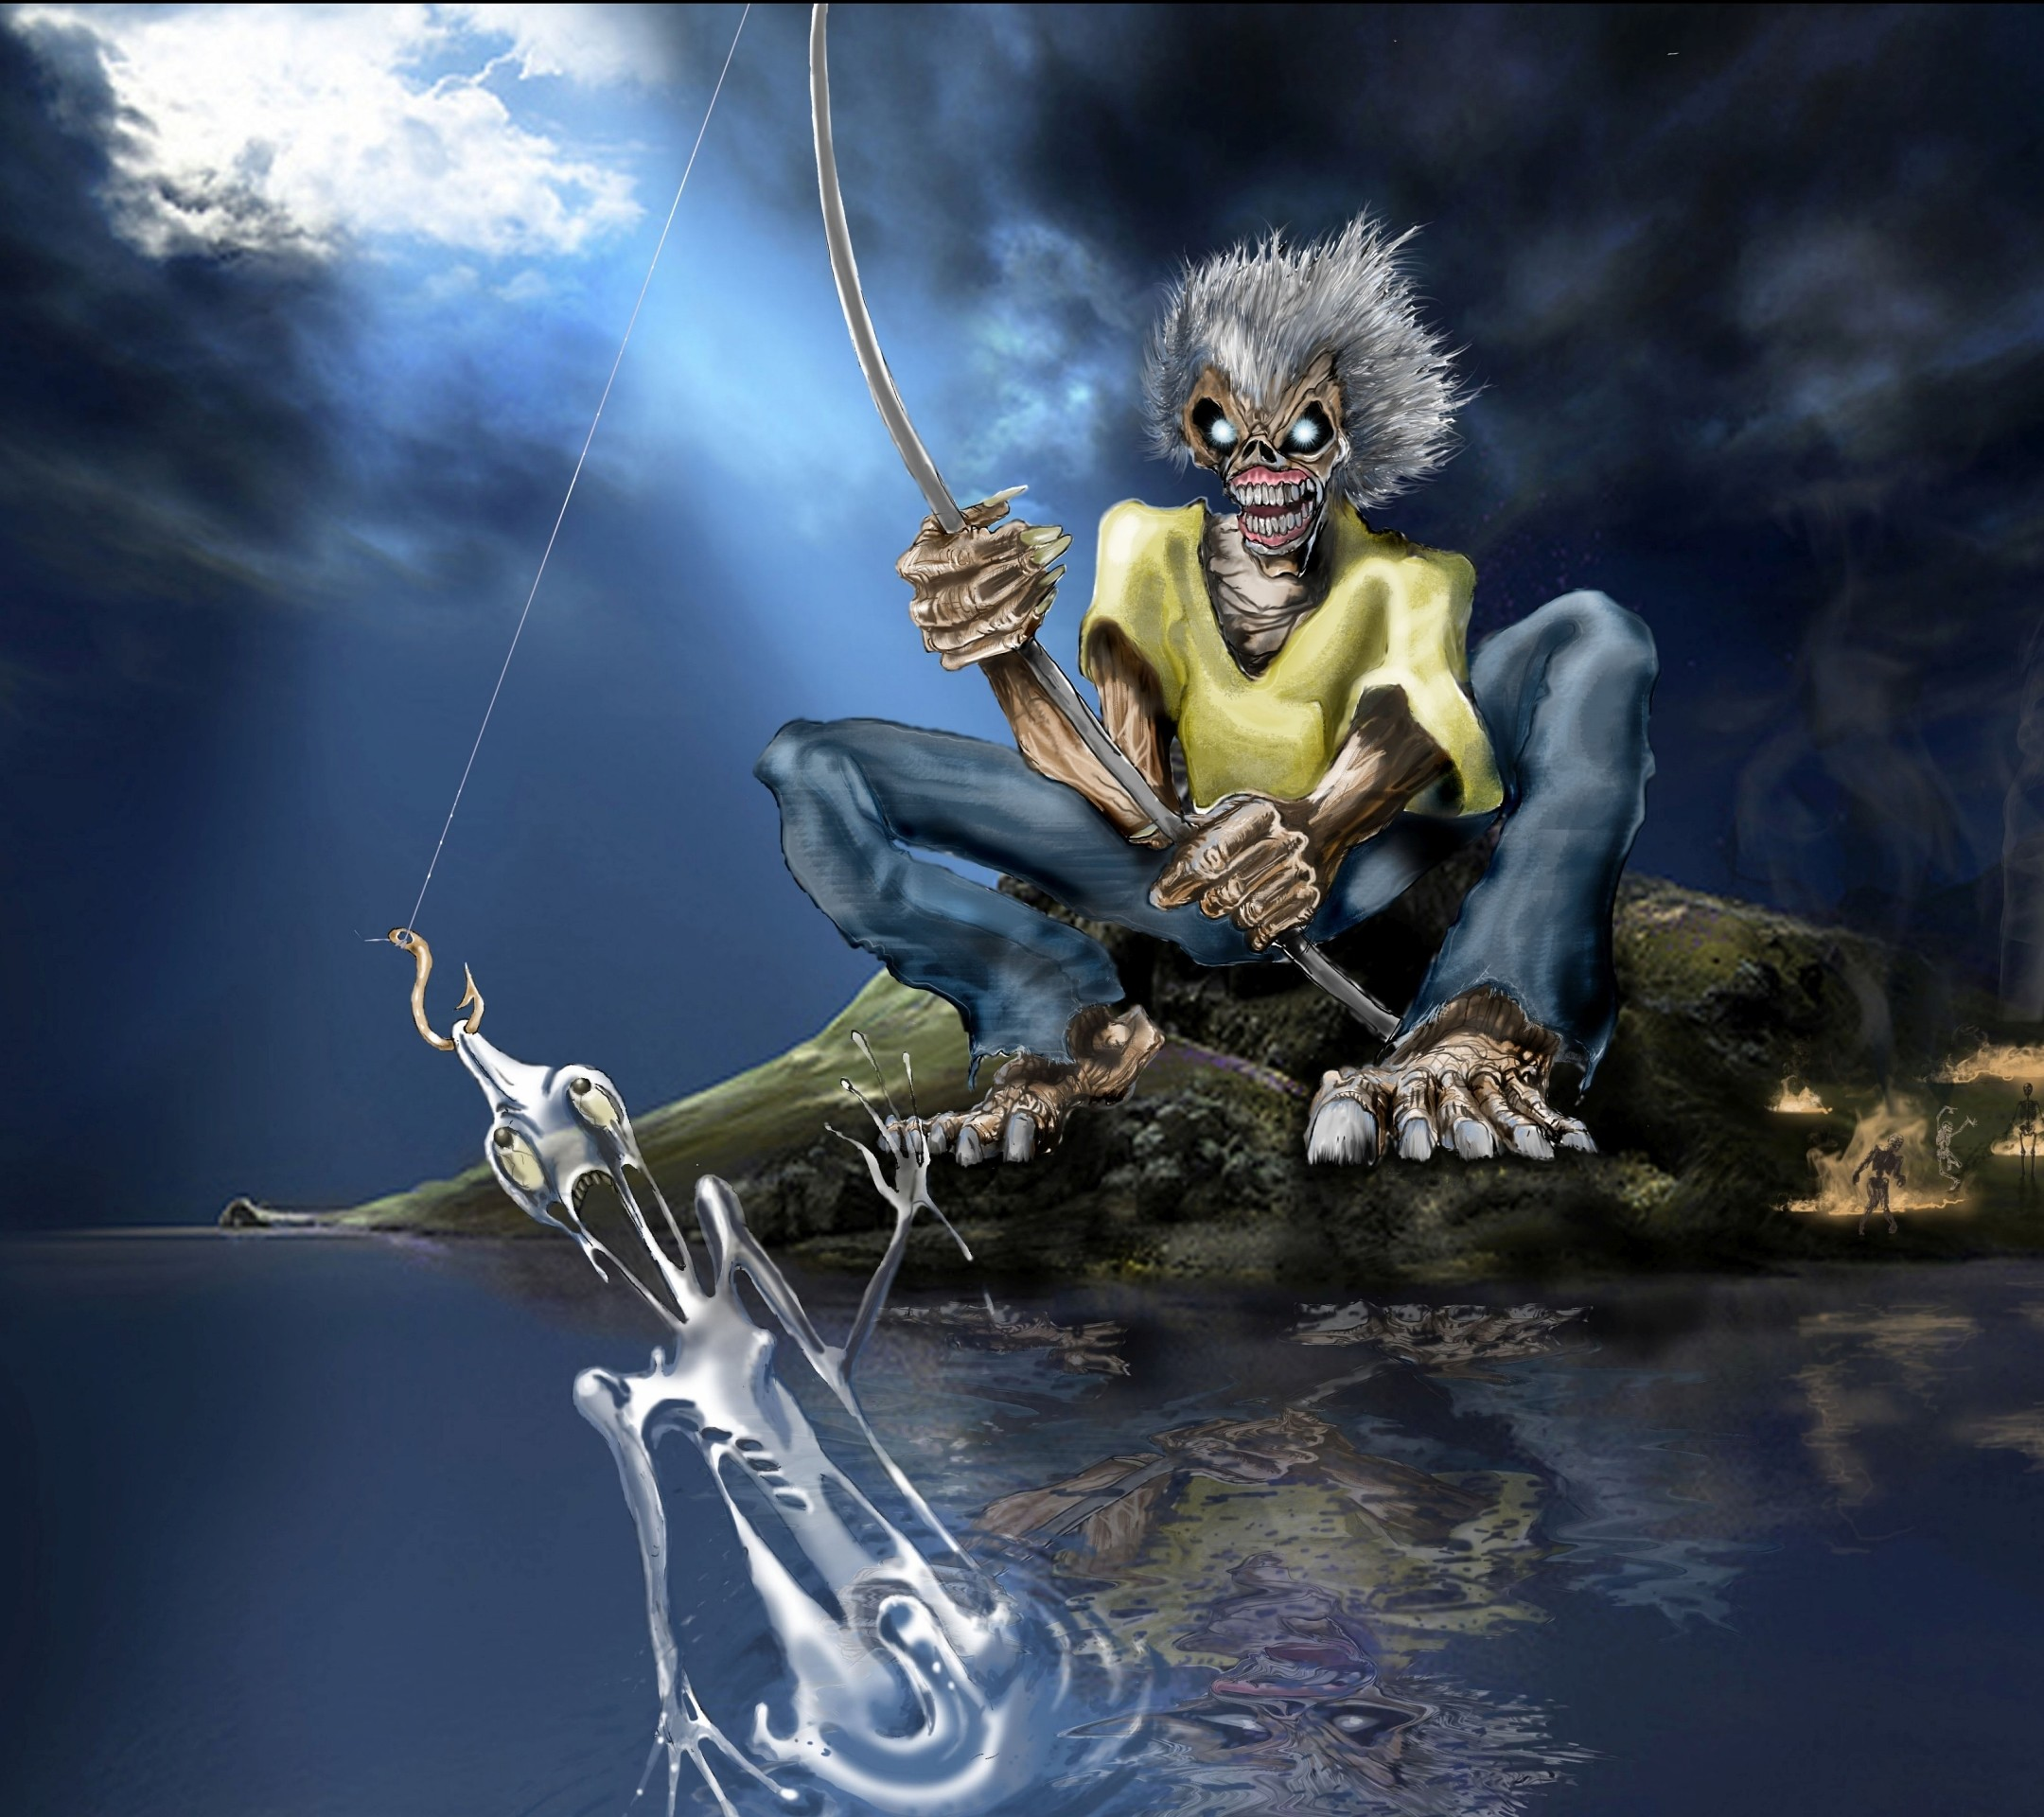 Wallpaper Iphone Iron Maiden: Iron Maiden Wallpapers (77+ Background Pictures